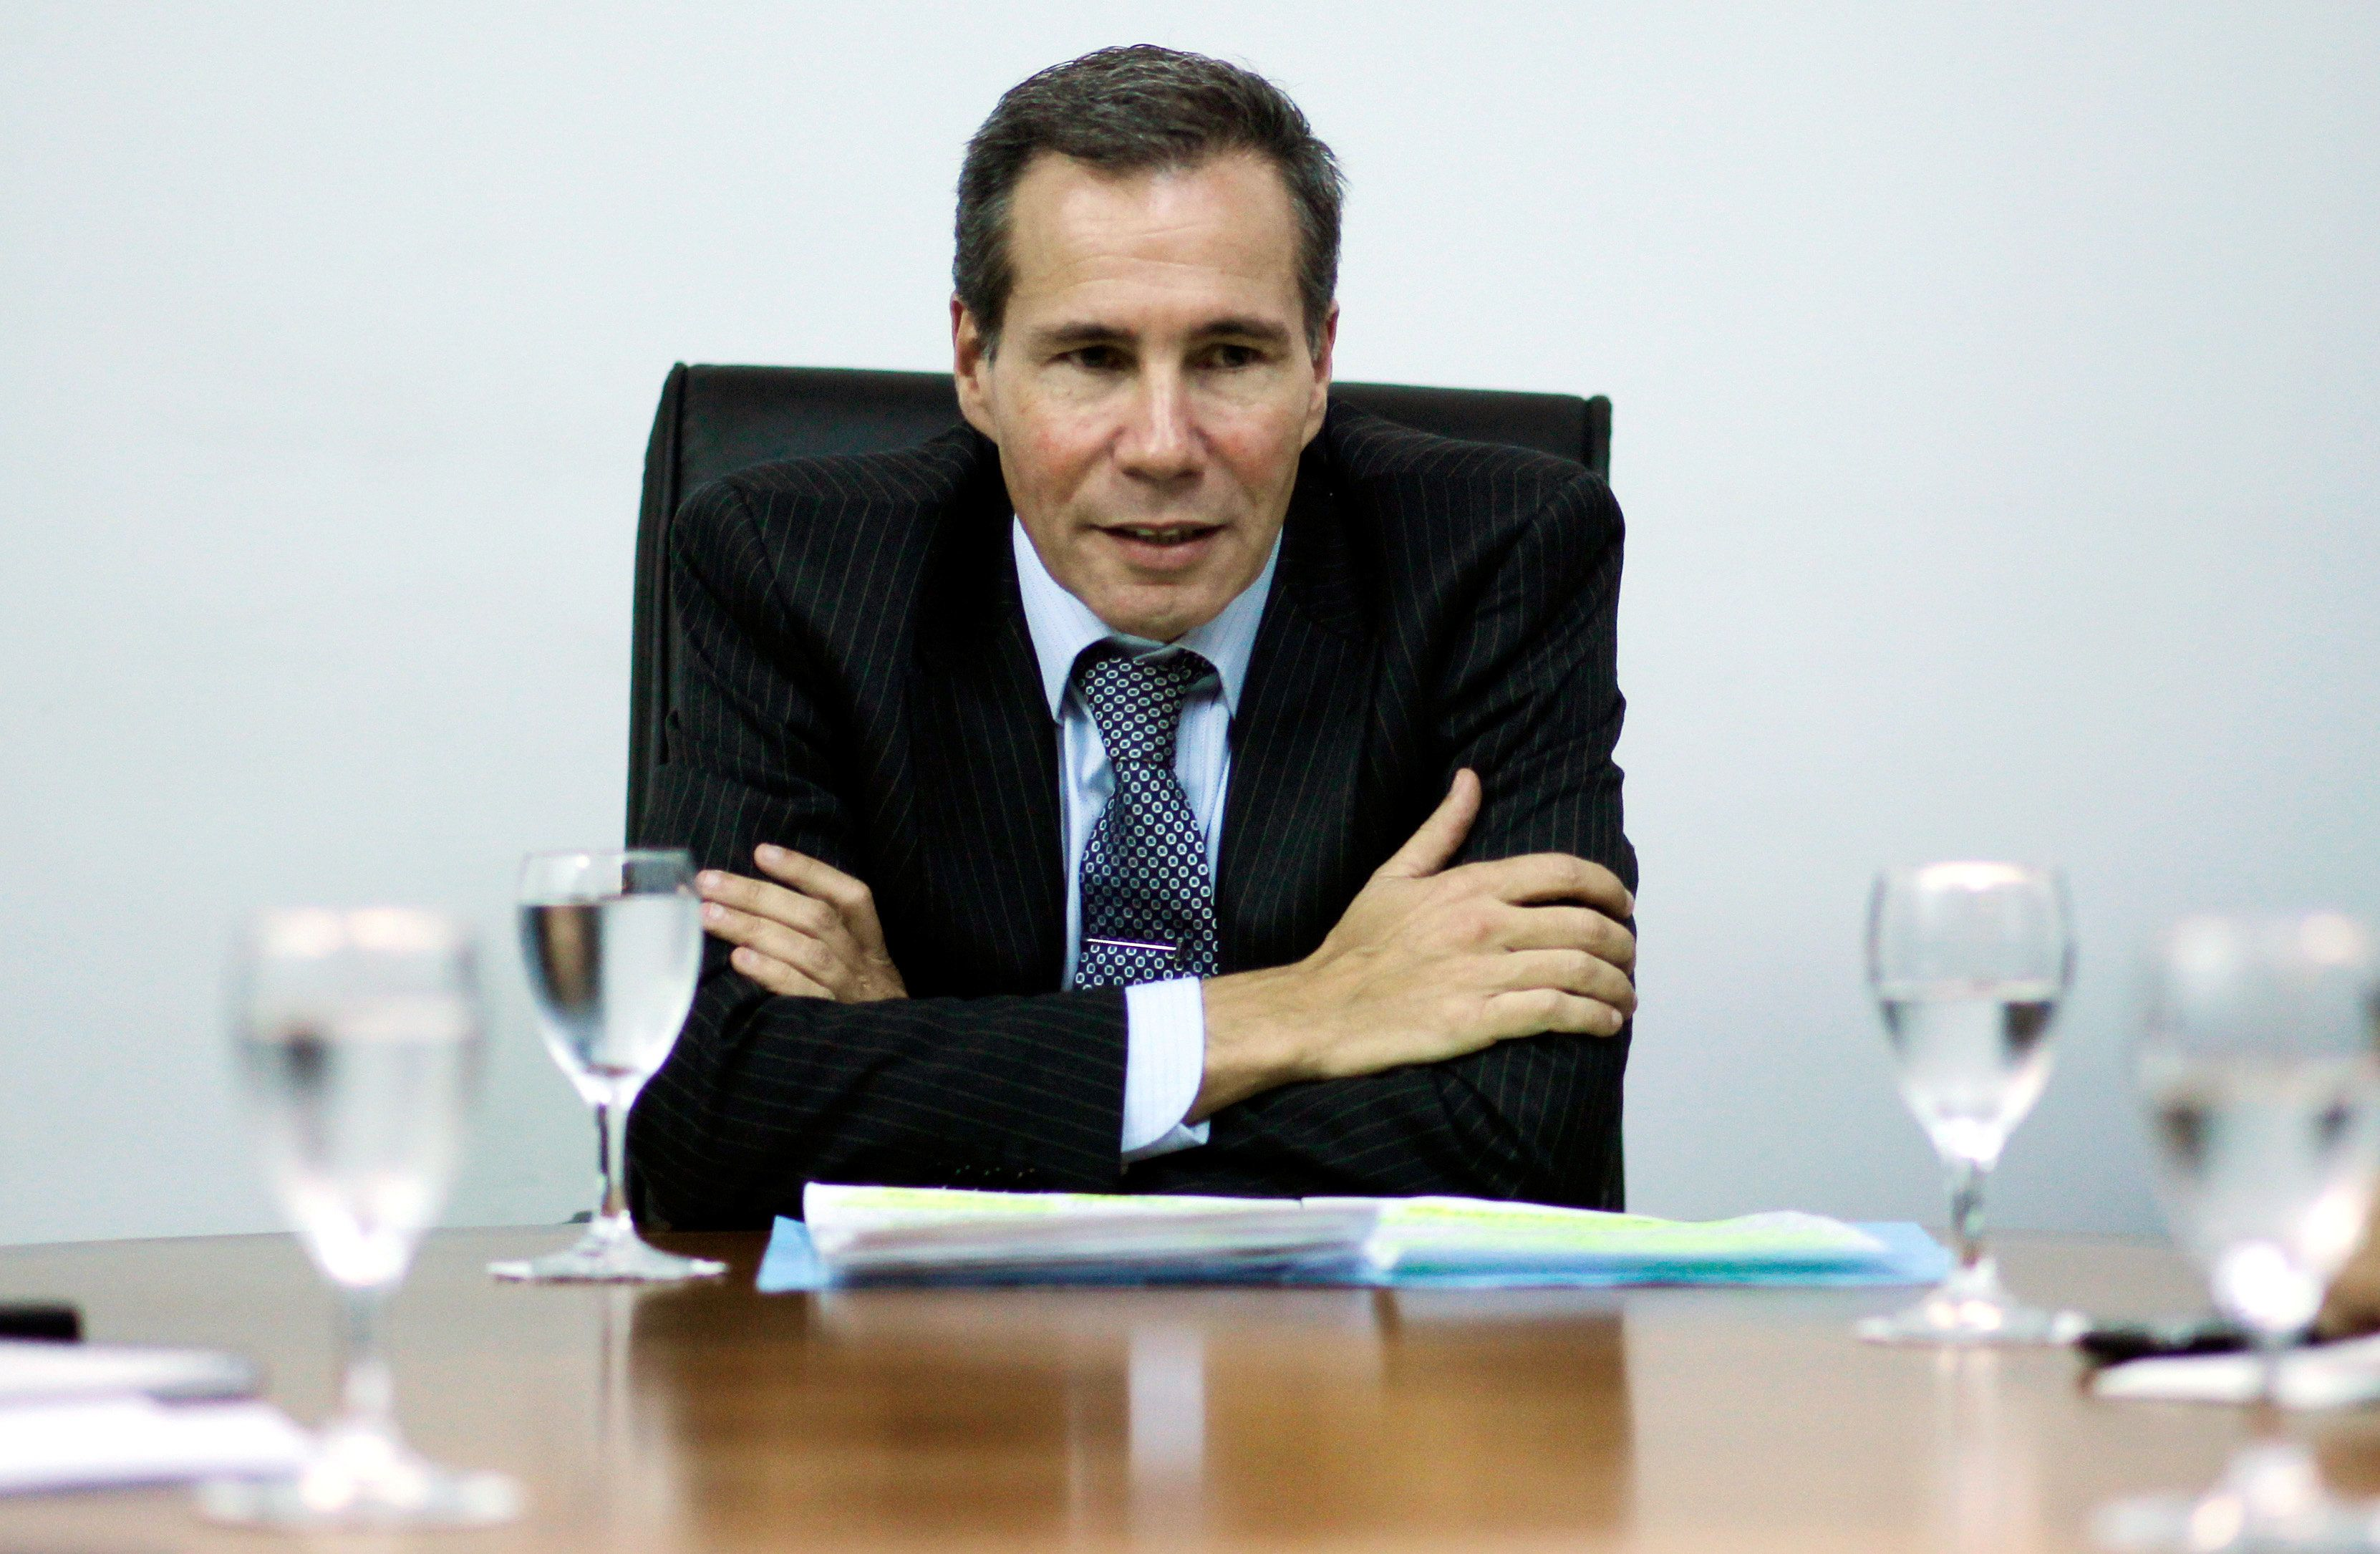 Late Argentine prosecutor Alberto Nisman speaks during a meeting with journalists in Buenos Aires, Argentina, May 29, 2013. Picture taken May 29, 2013.  REUTERS/Marcos Brindicci